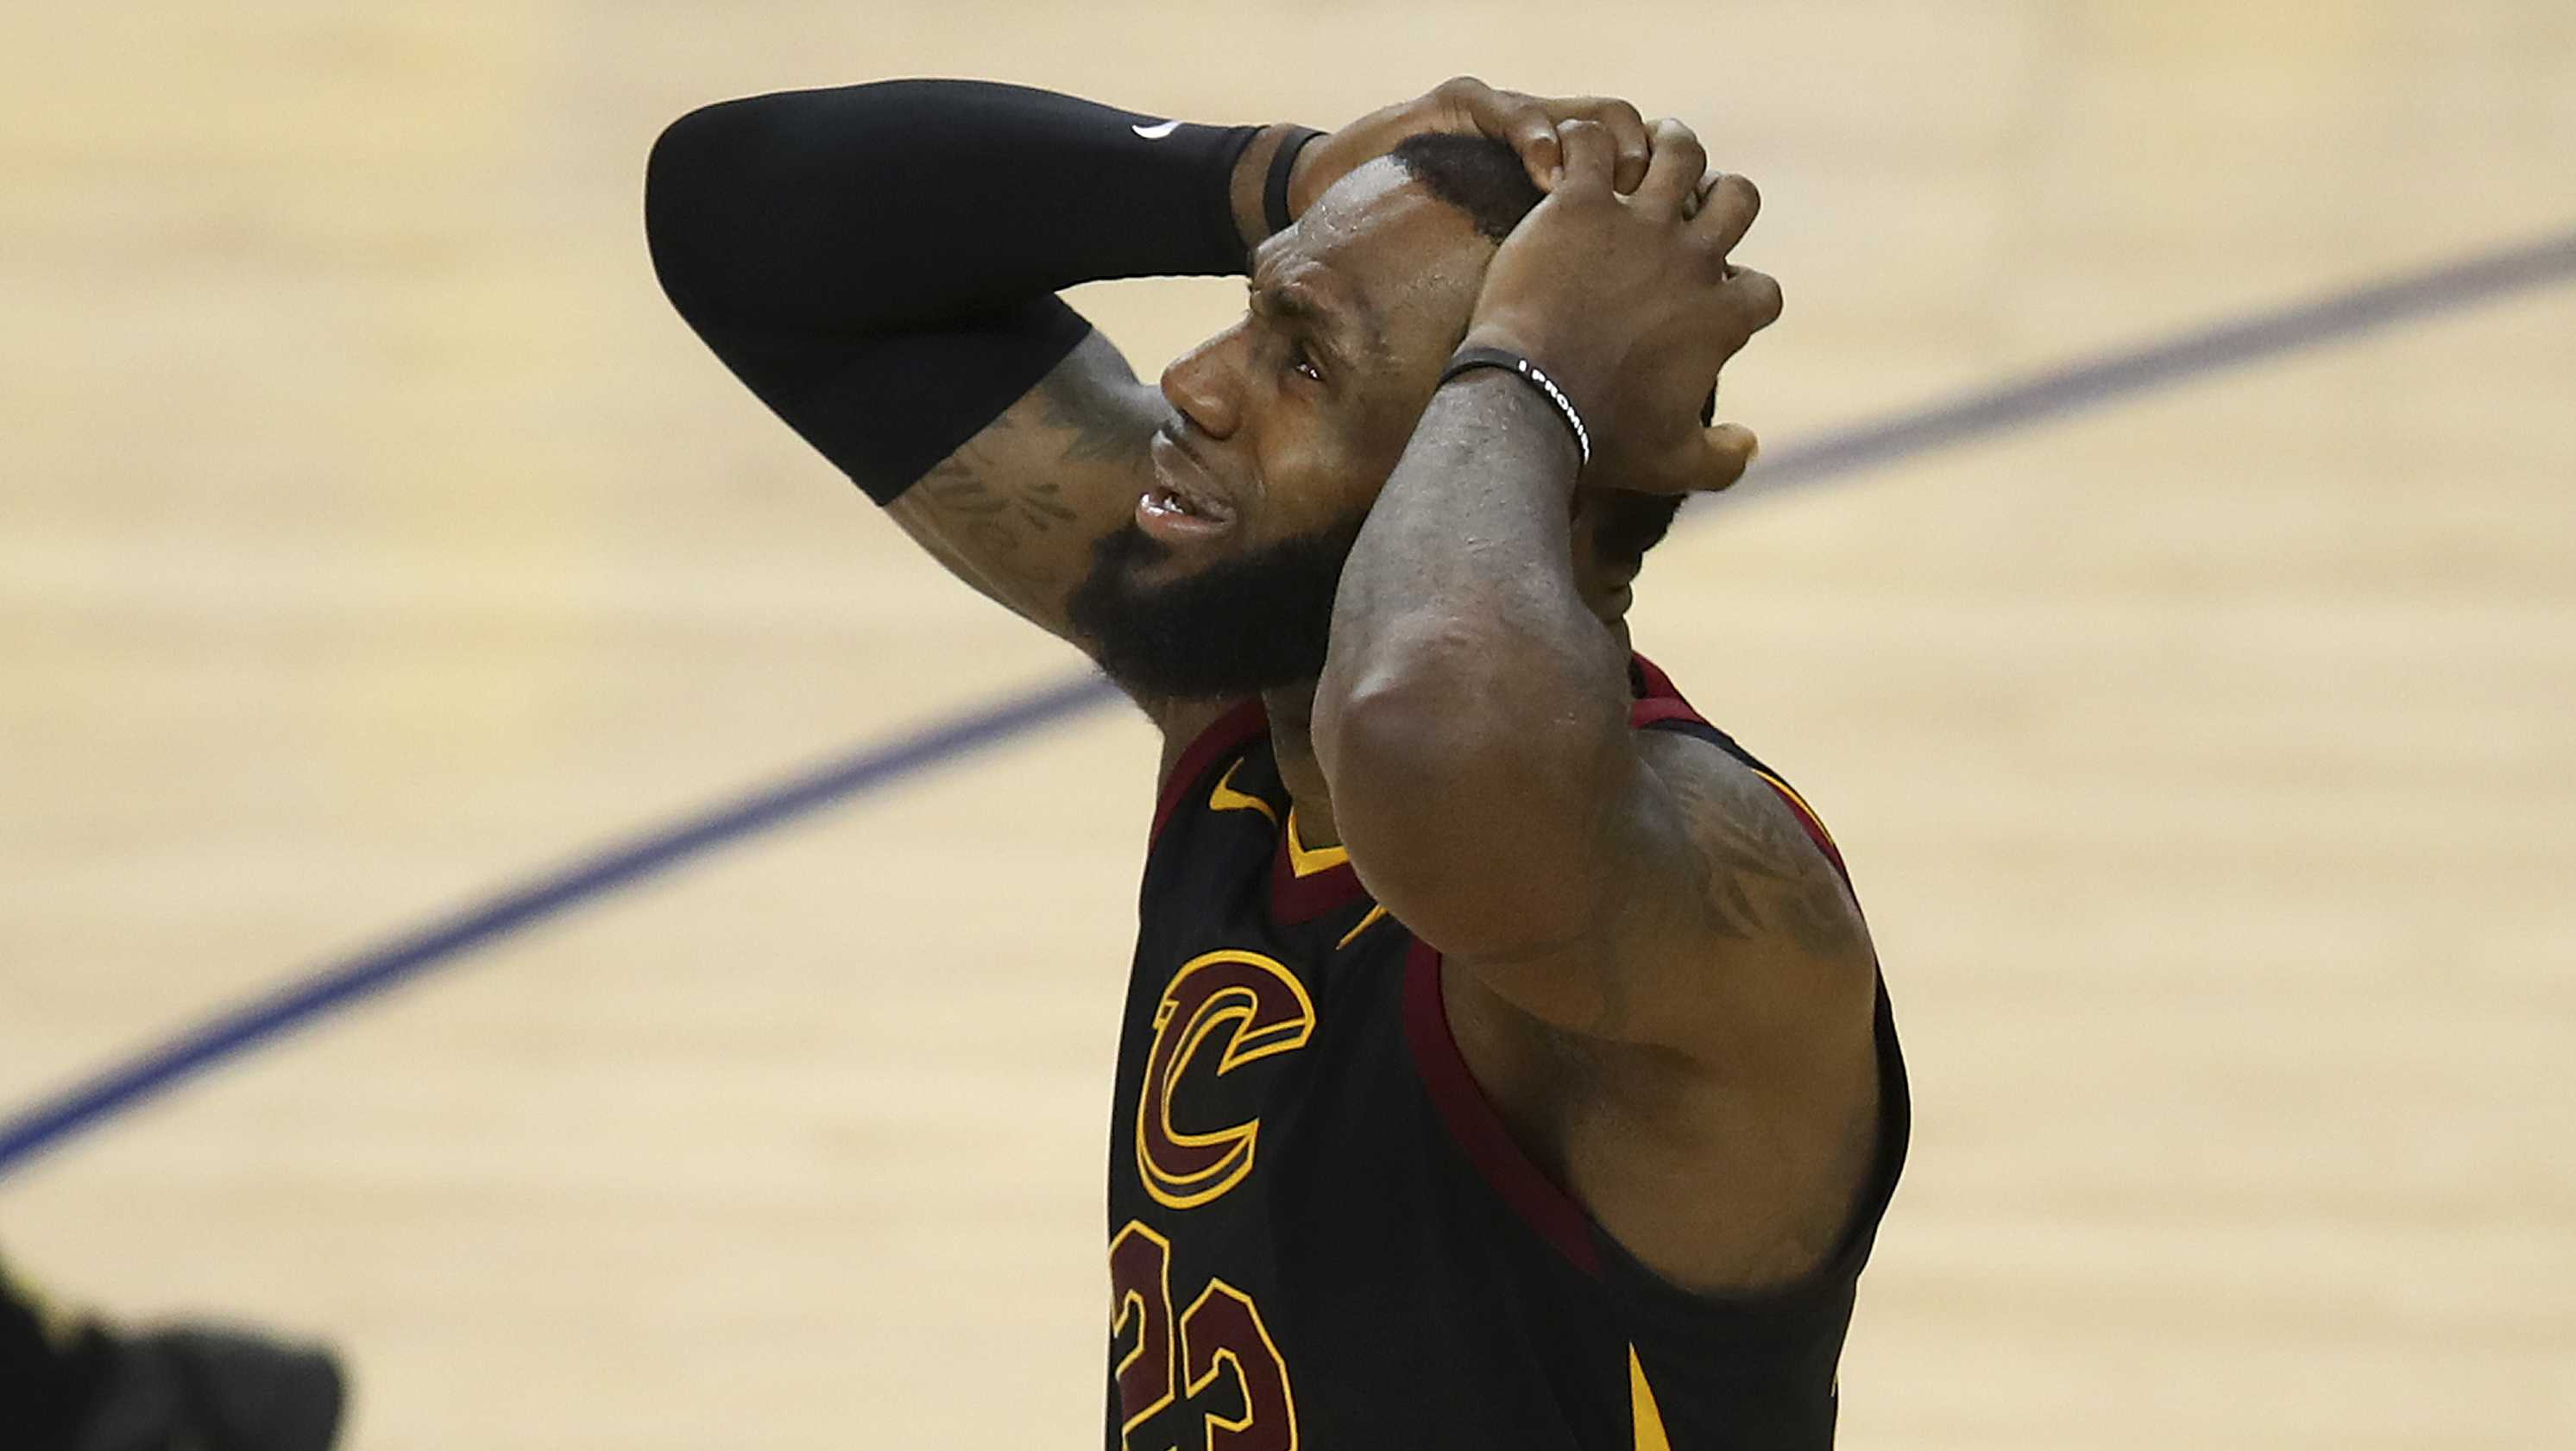 Cleveland Cavaliers forward LeBron James reacts to a call during the second half of Game 1 of basketball's NBA Finals between the Golden State Warriors and the Cavaliers in Oakland, Calif., Thursday, May 31, 2018.